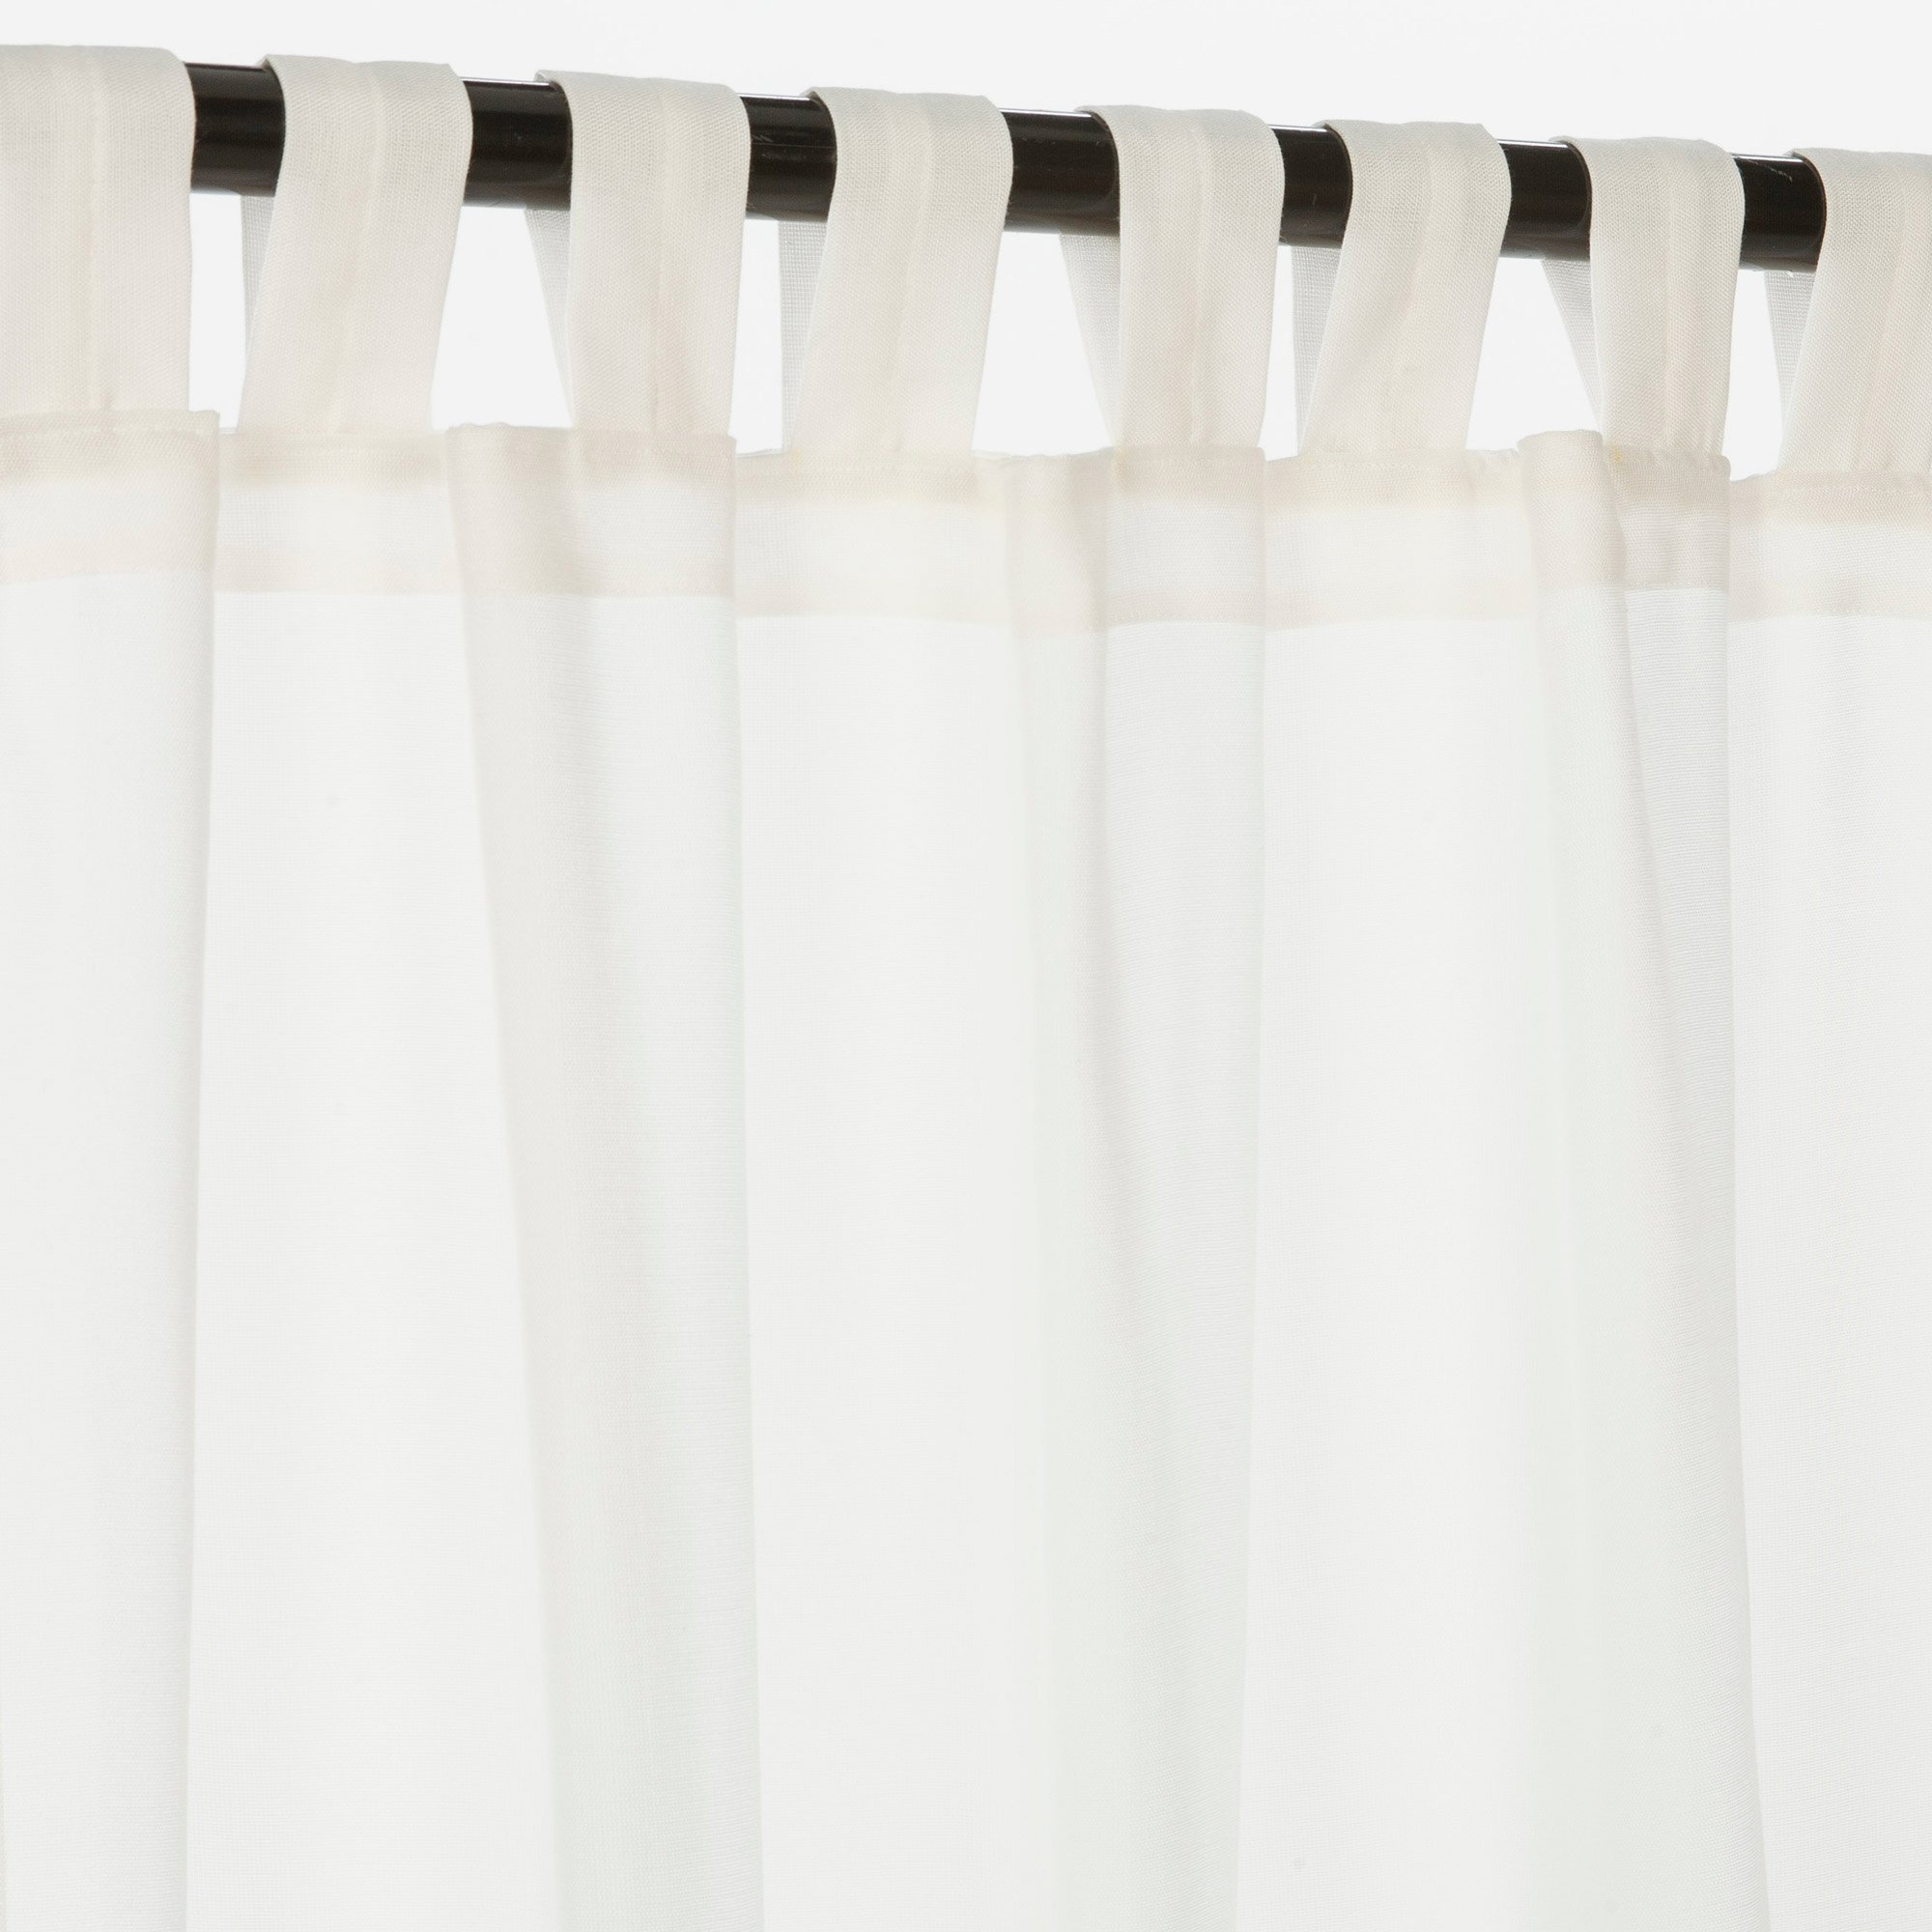 Sunbrella Outdoor Curtain with Tab Top - Snow(Sheer), 50x96